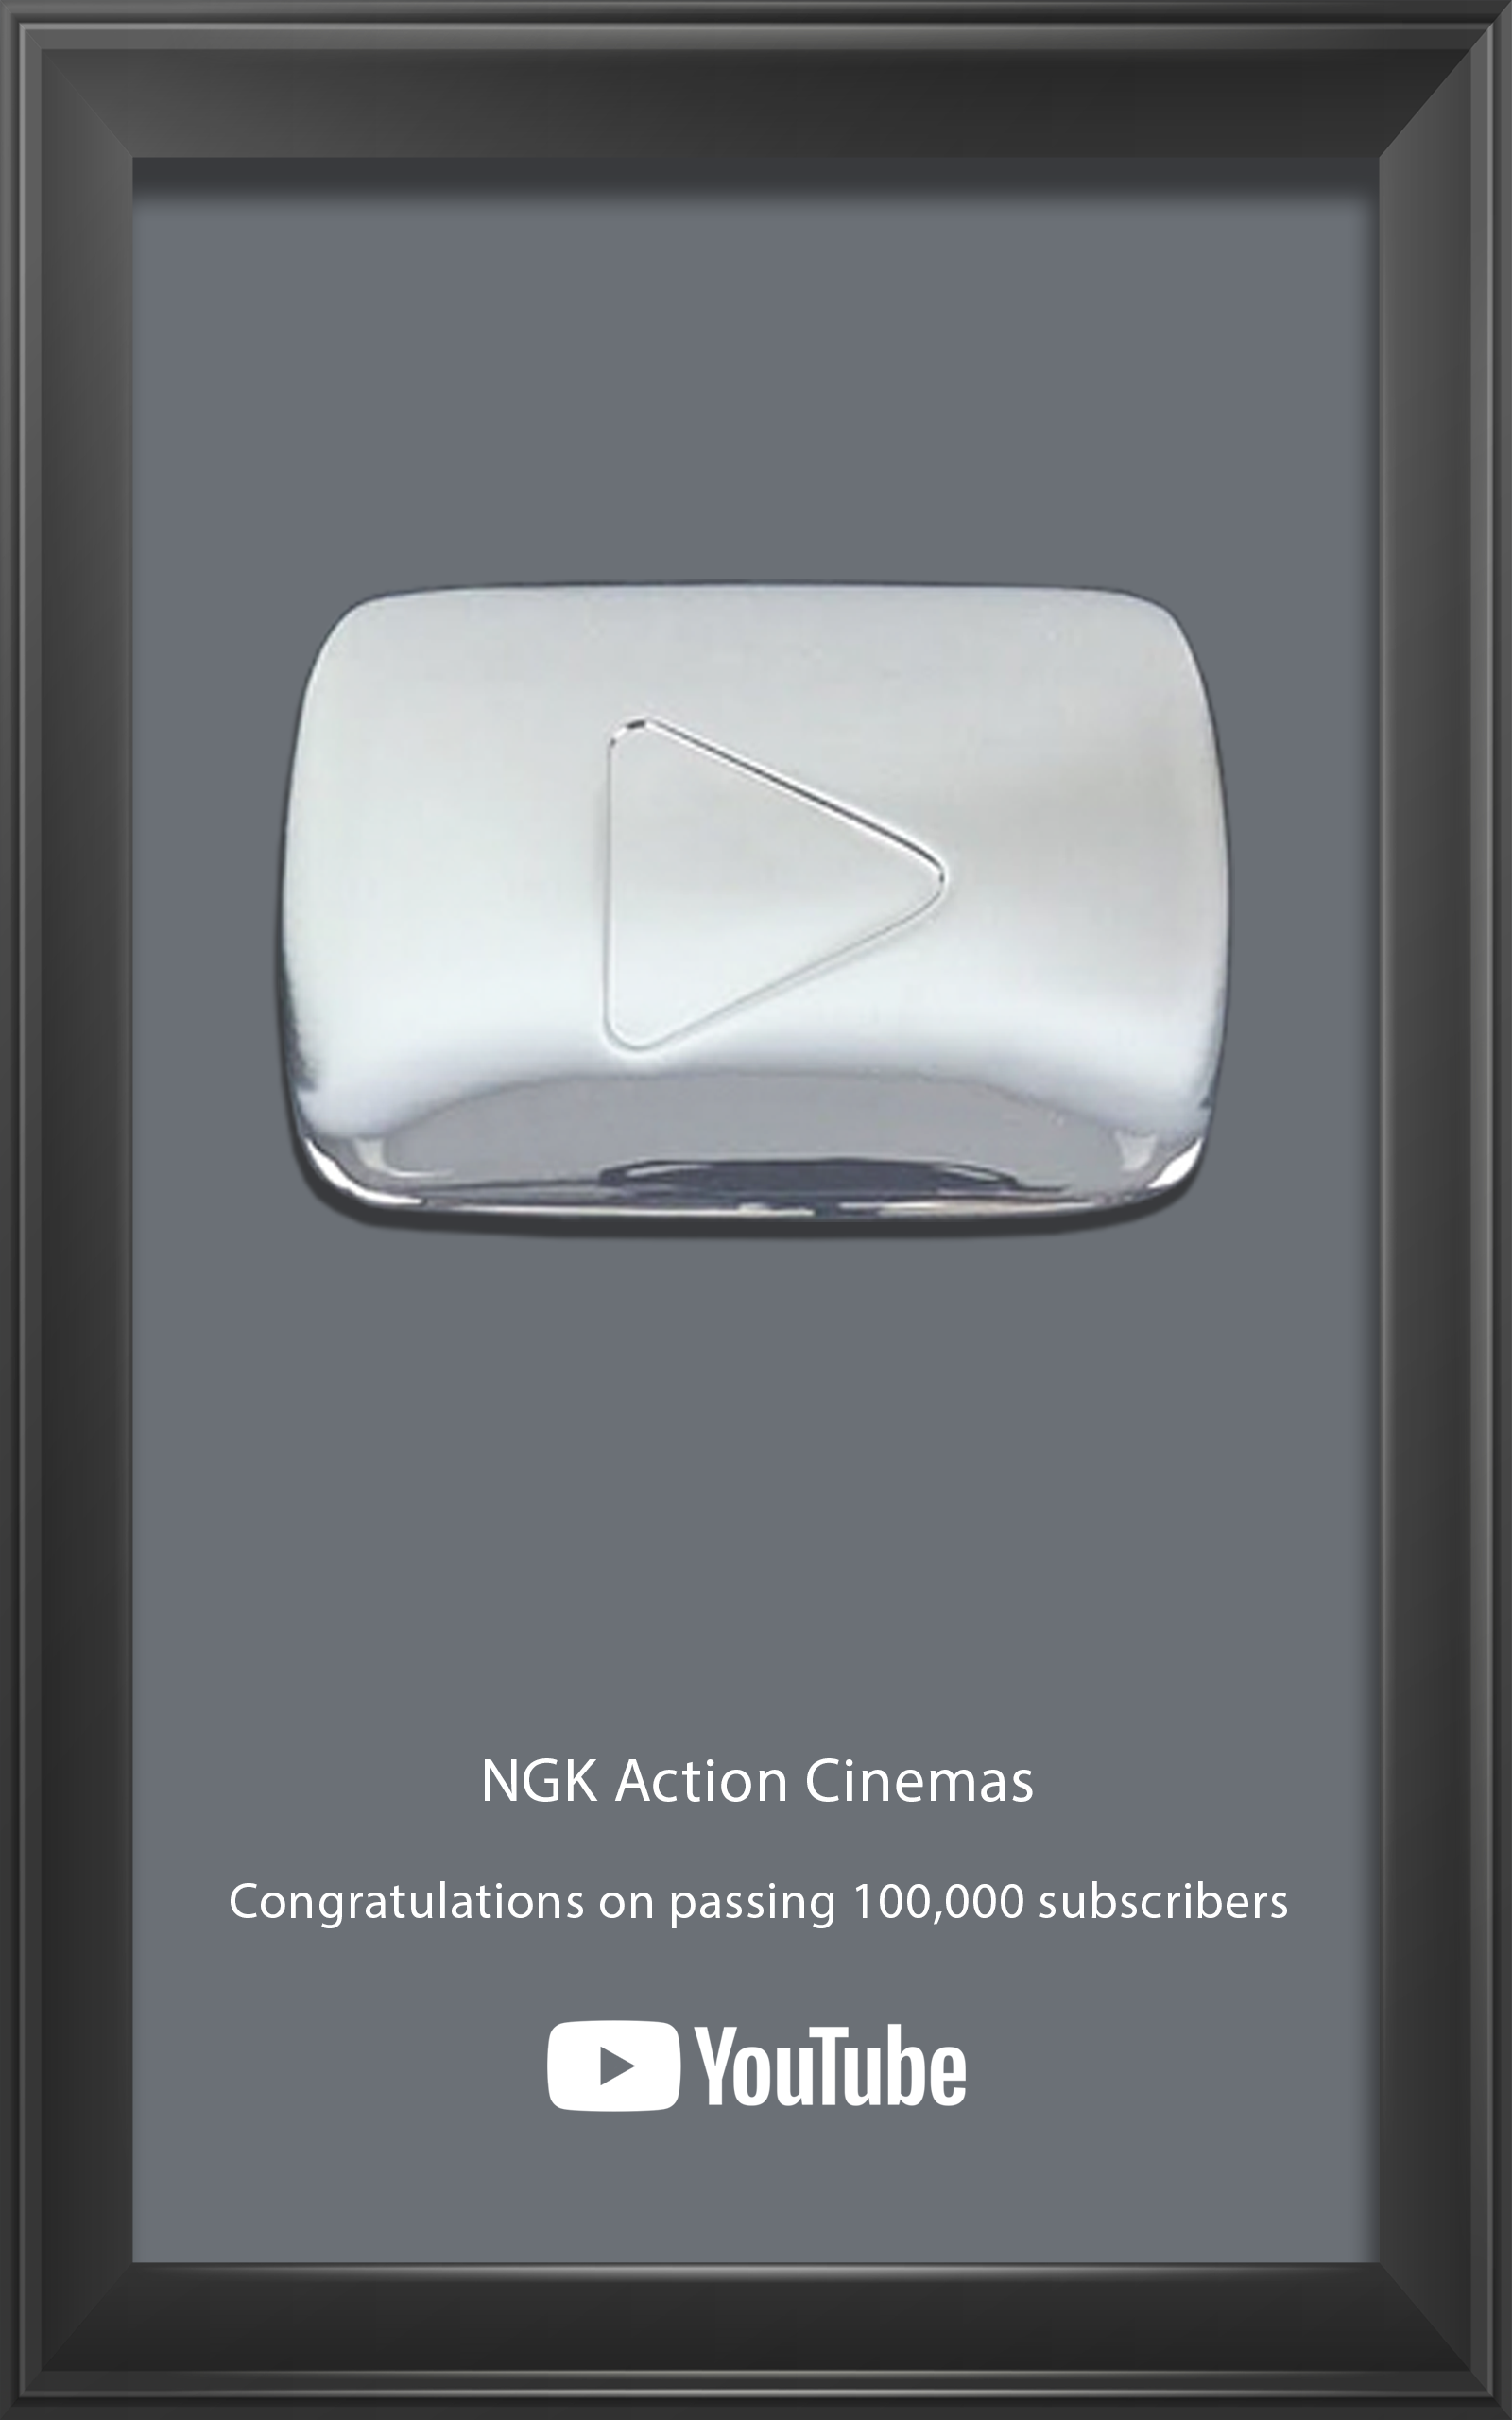 ngk-action